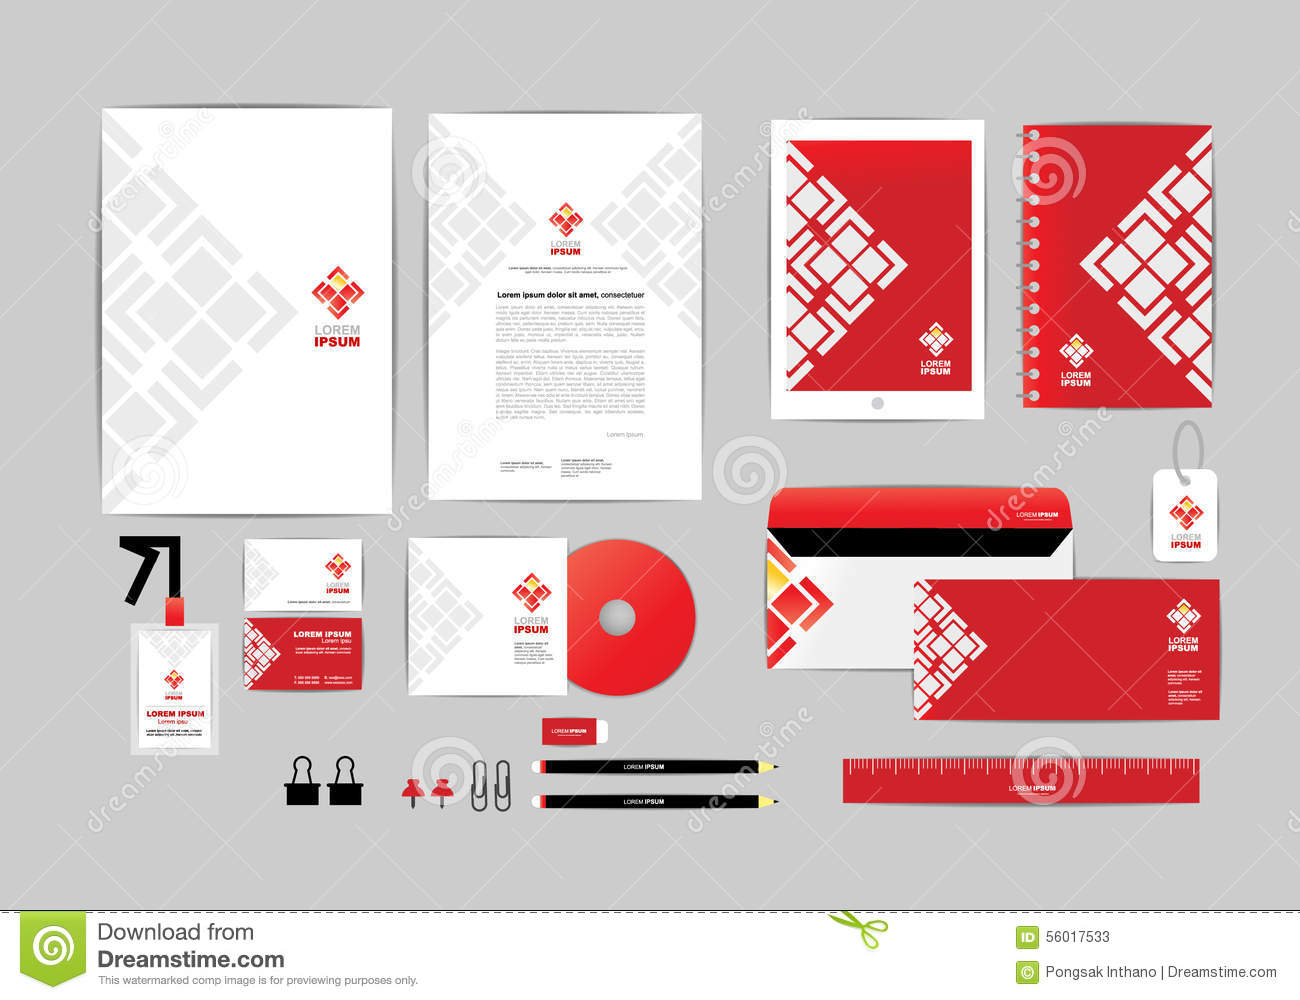 Red and white with triangle corporate identity template for your red and white with triangle corporate identity template for your business g cheaphphosting Gallery